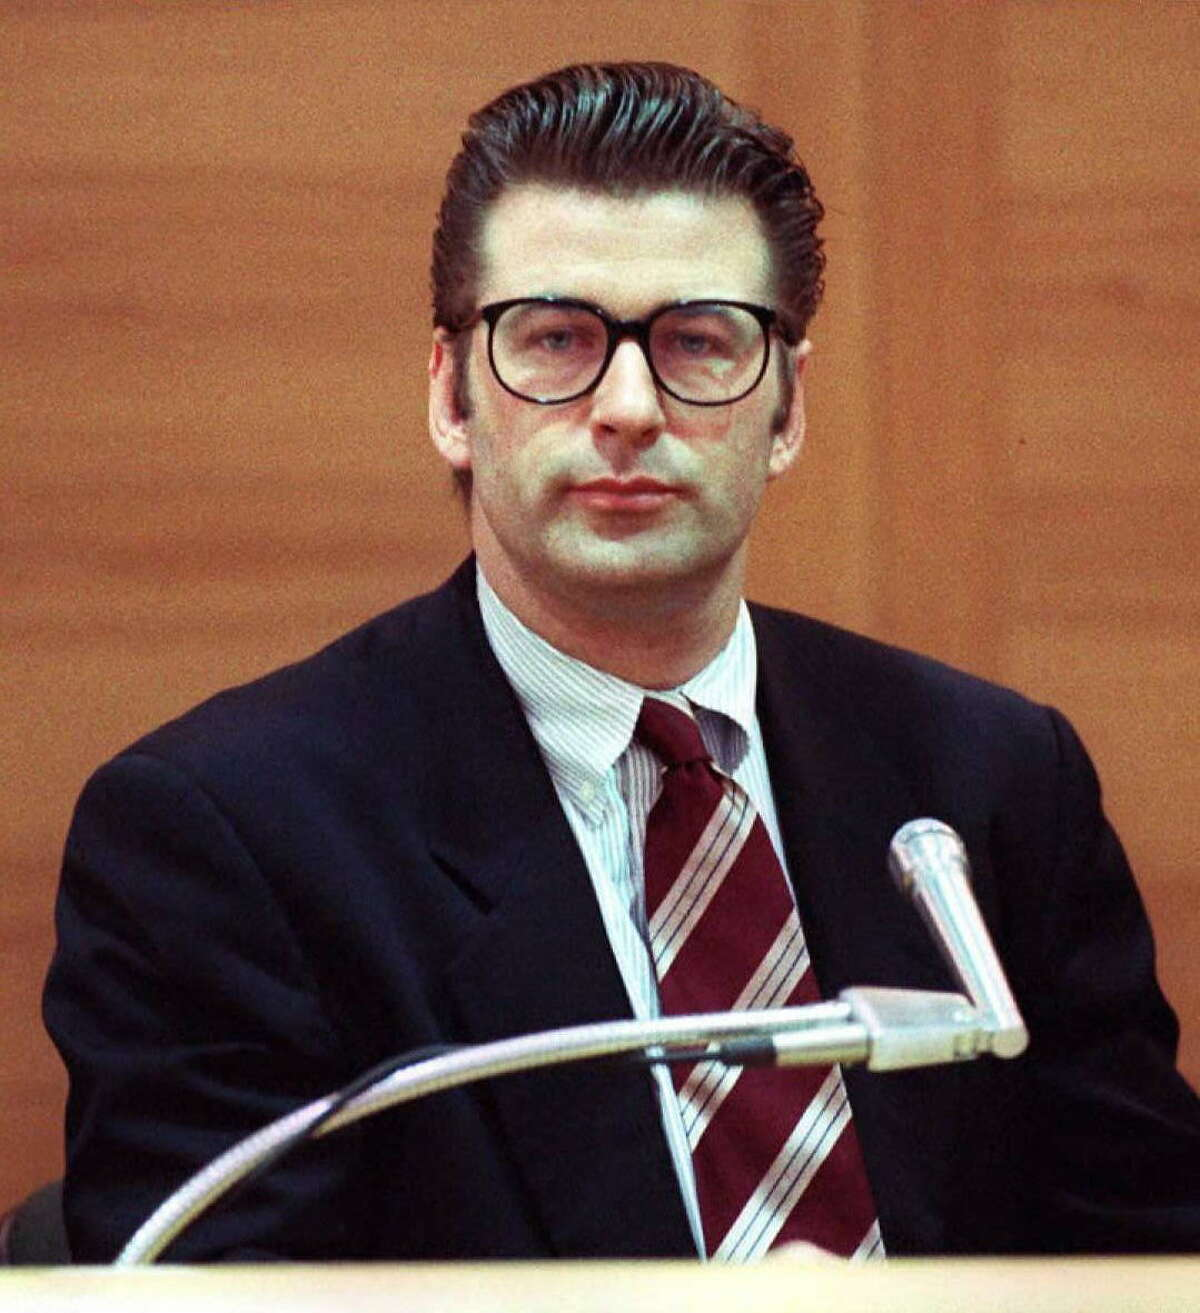 Alec Baldwin in some hipster glasses back in 1996, when he took the stand at his misdemeanor assault trial in California. Baldwin, accused of hitting a photographer, was acquitted.